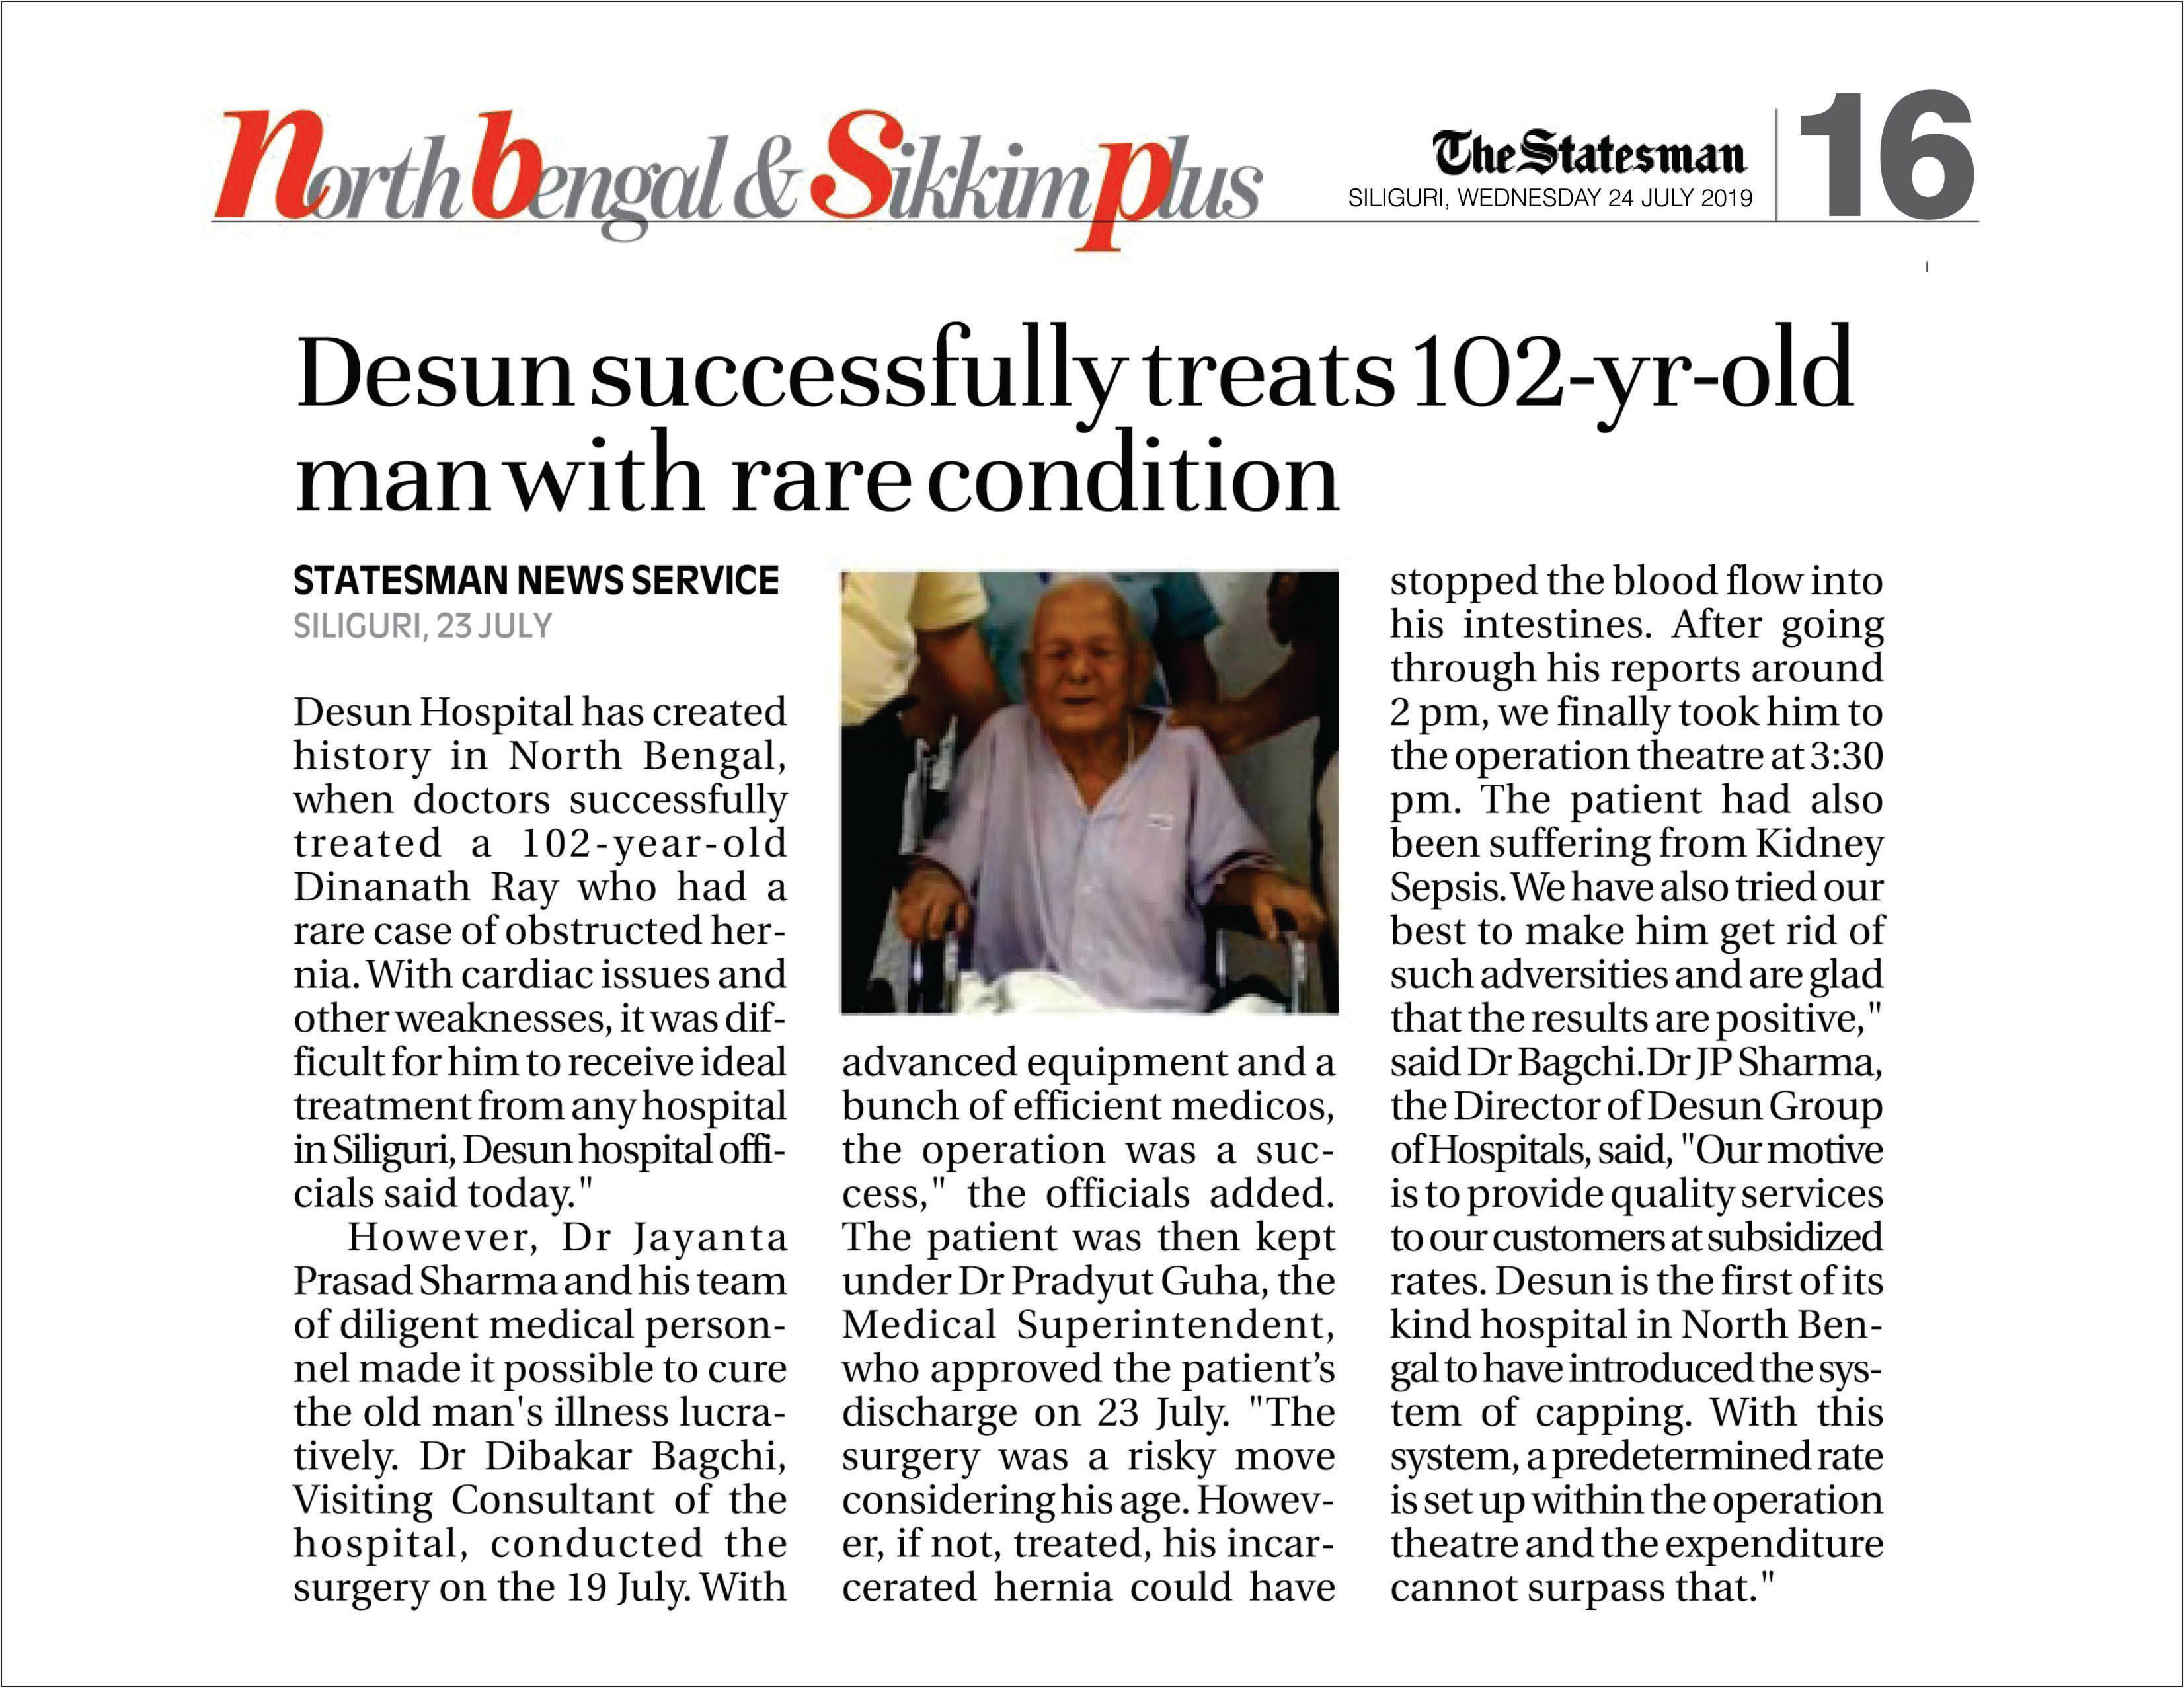 Desun successfully treats 102-yr-old-man with rare condition- The Statesman